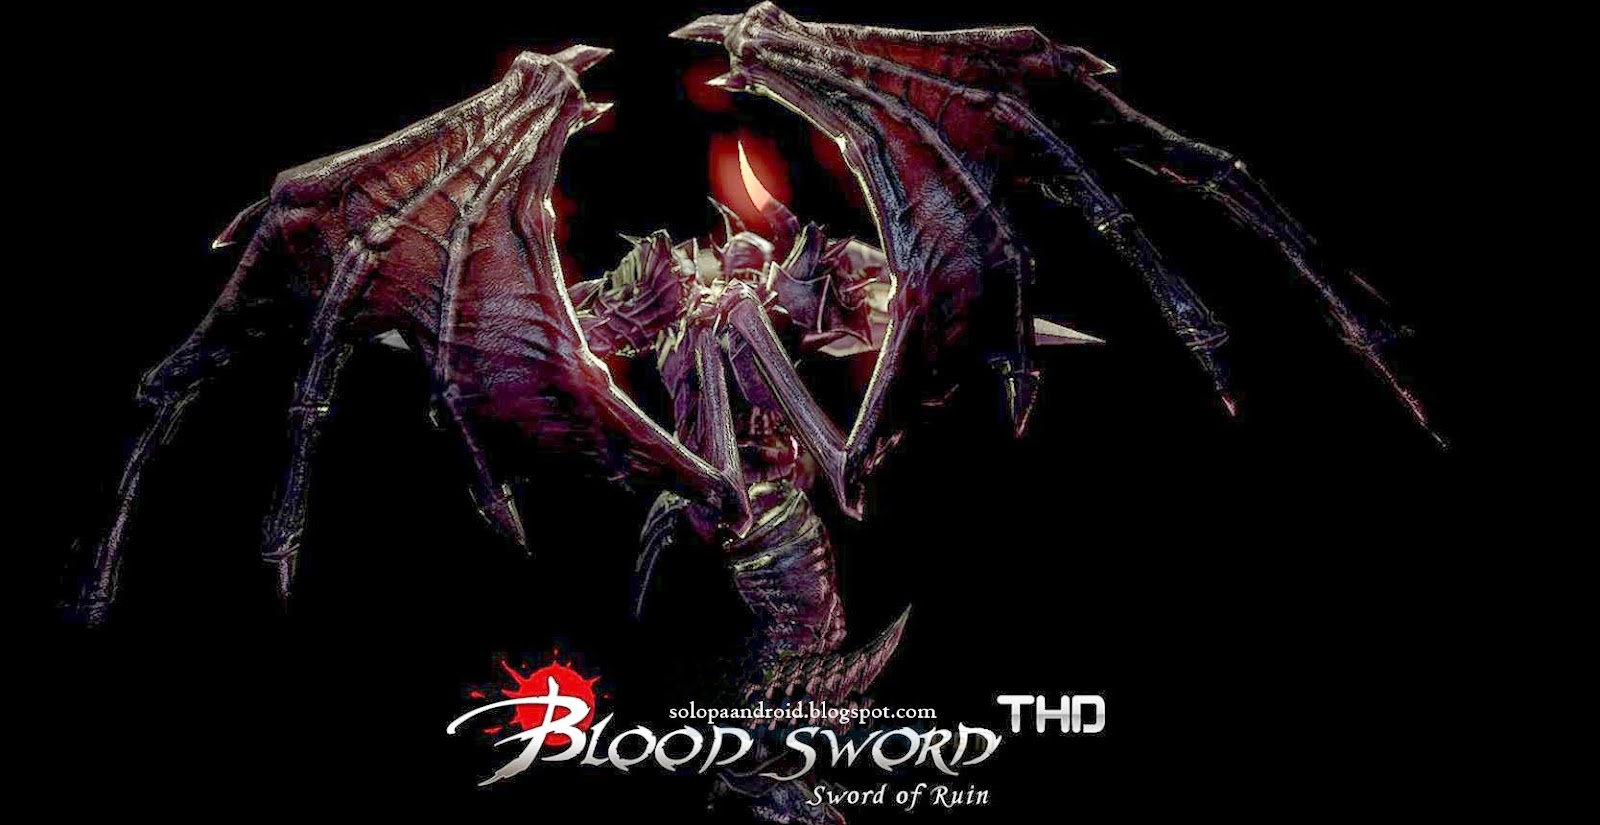 Blood Sword THD v1.6 (APK+OBB) (Android) (UL)